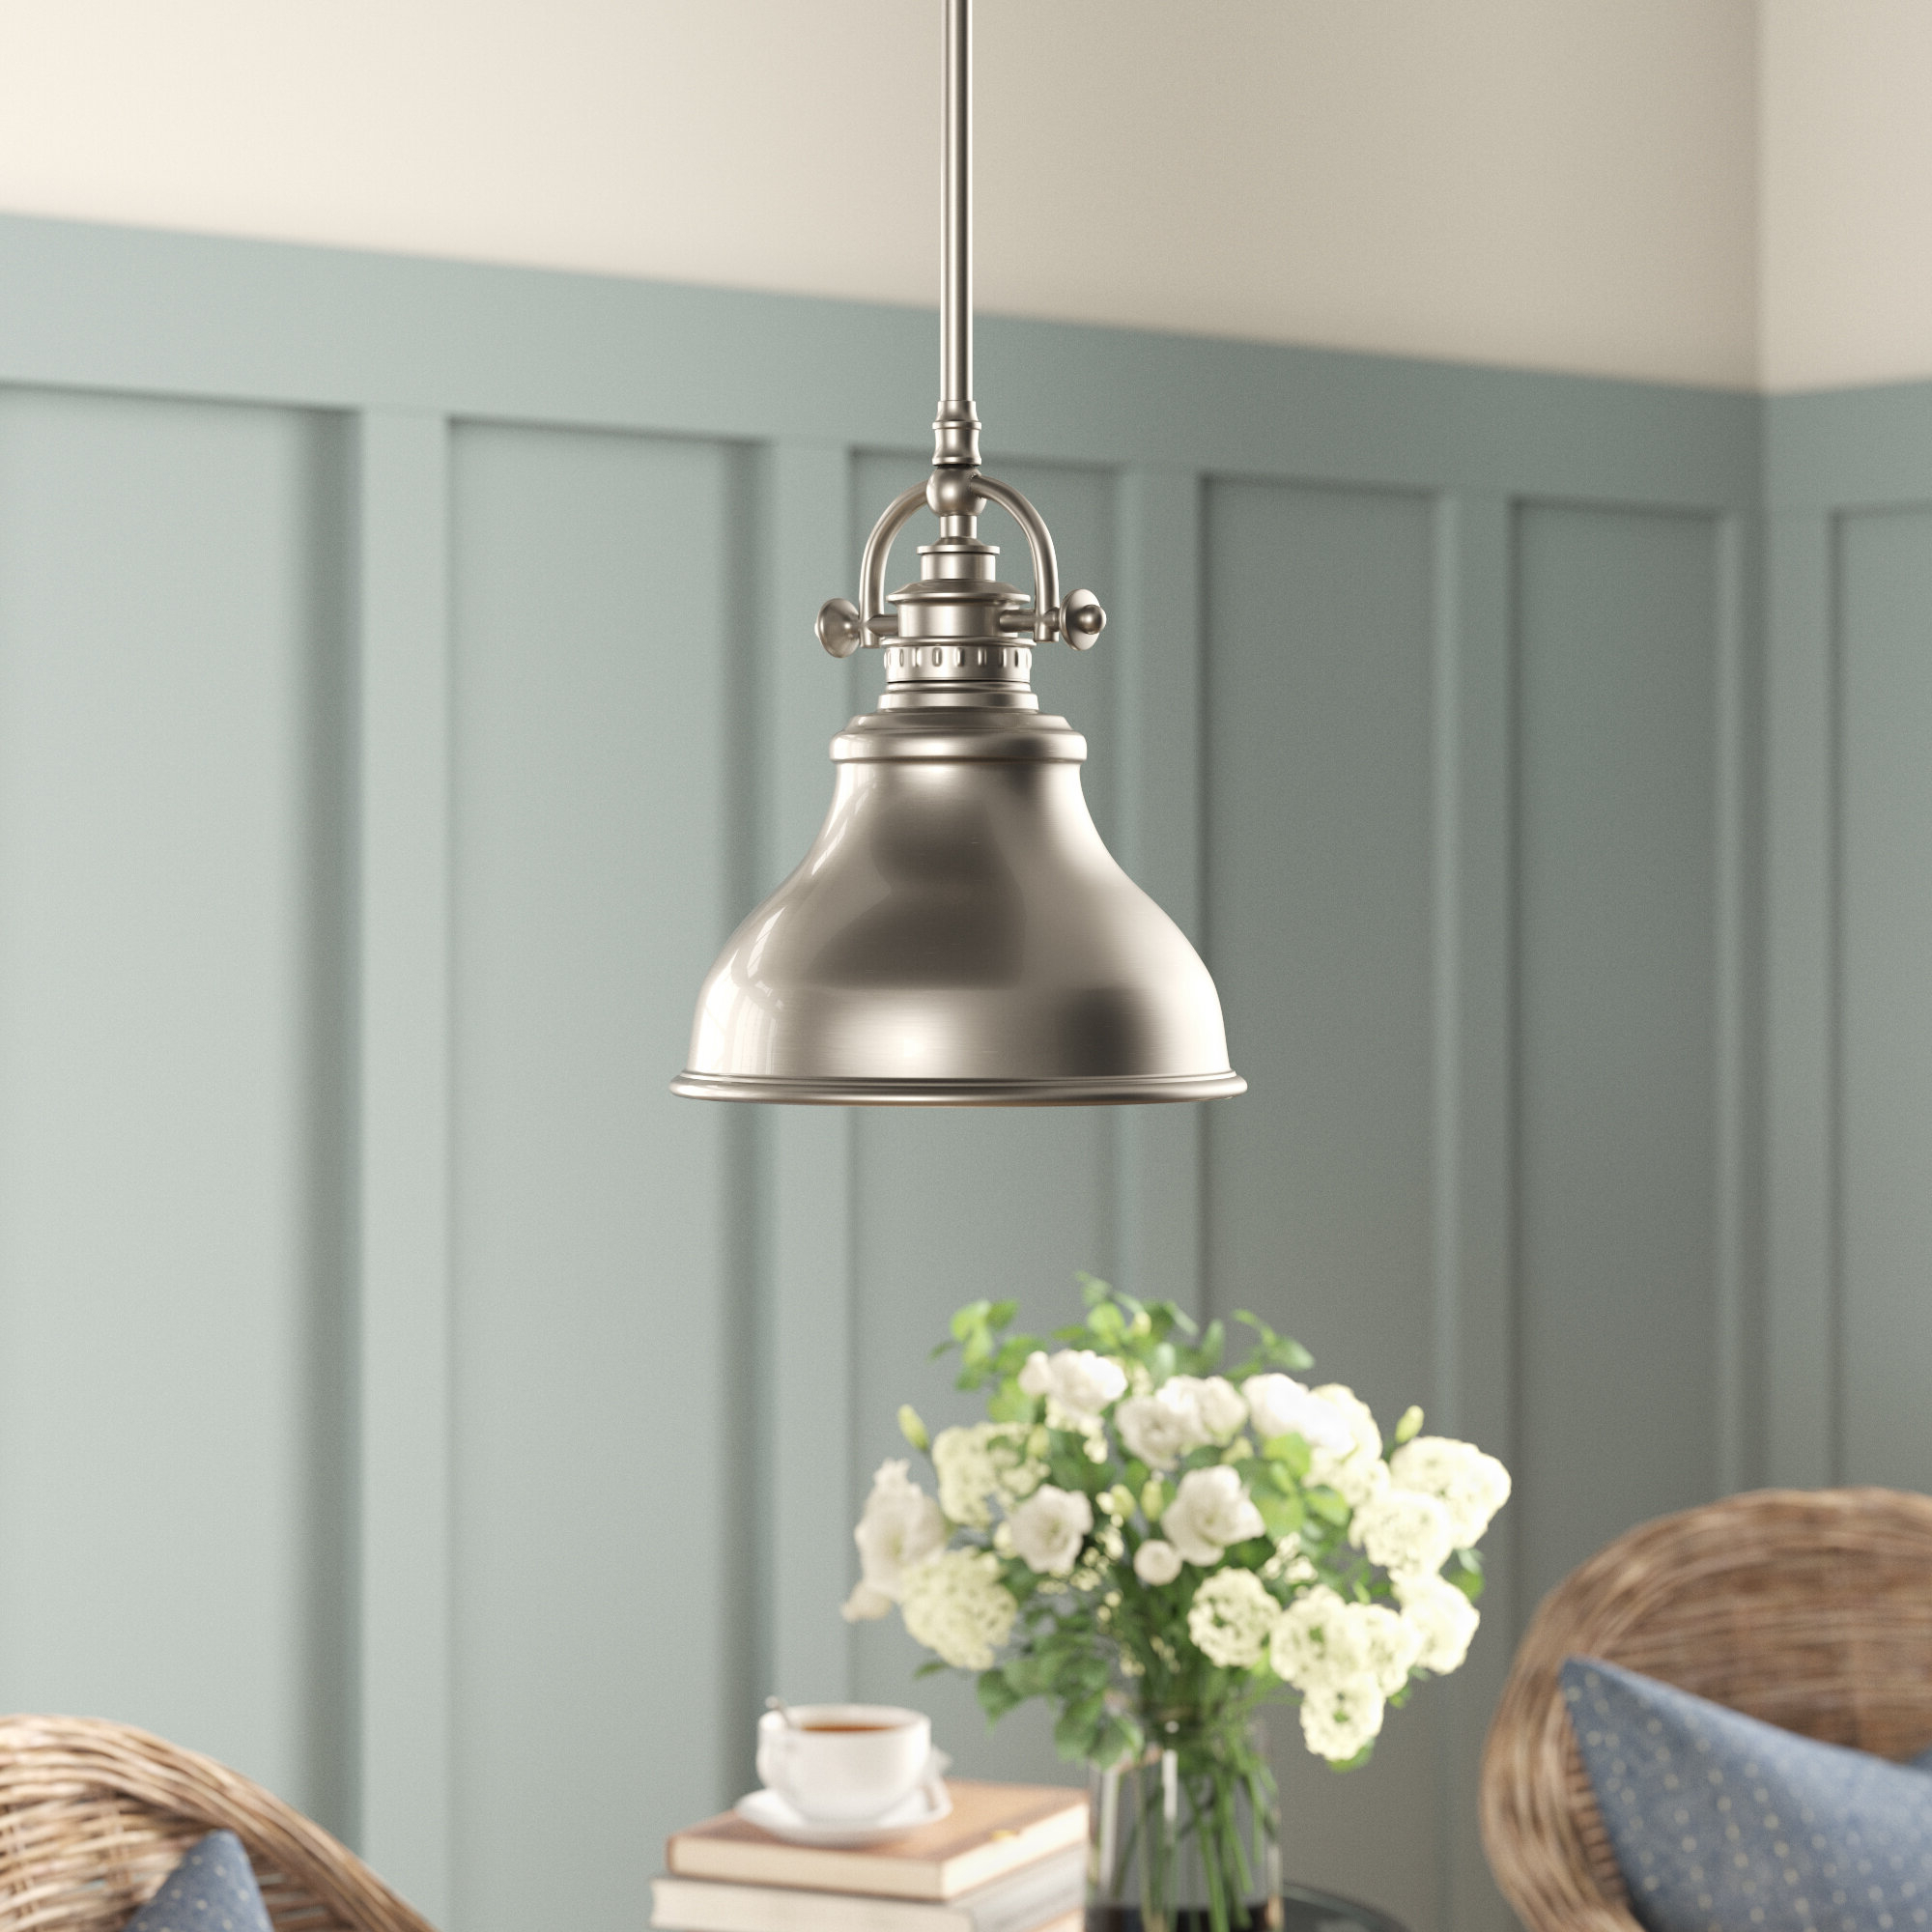 Beachcrest Home Mueller 1 Light Single Dome Pendant For Widely Used Mueller 1 Light Single Dome Pendants (View 3 of 25)